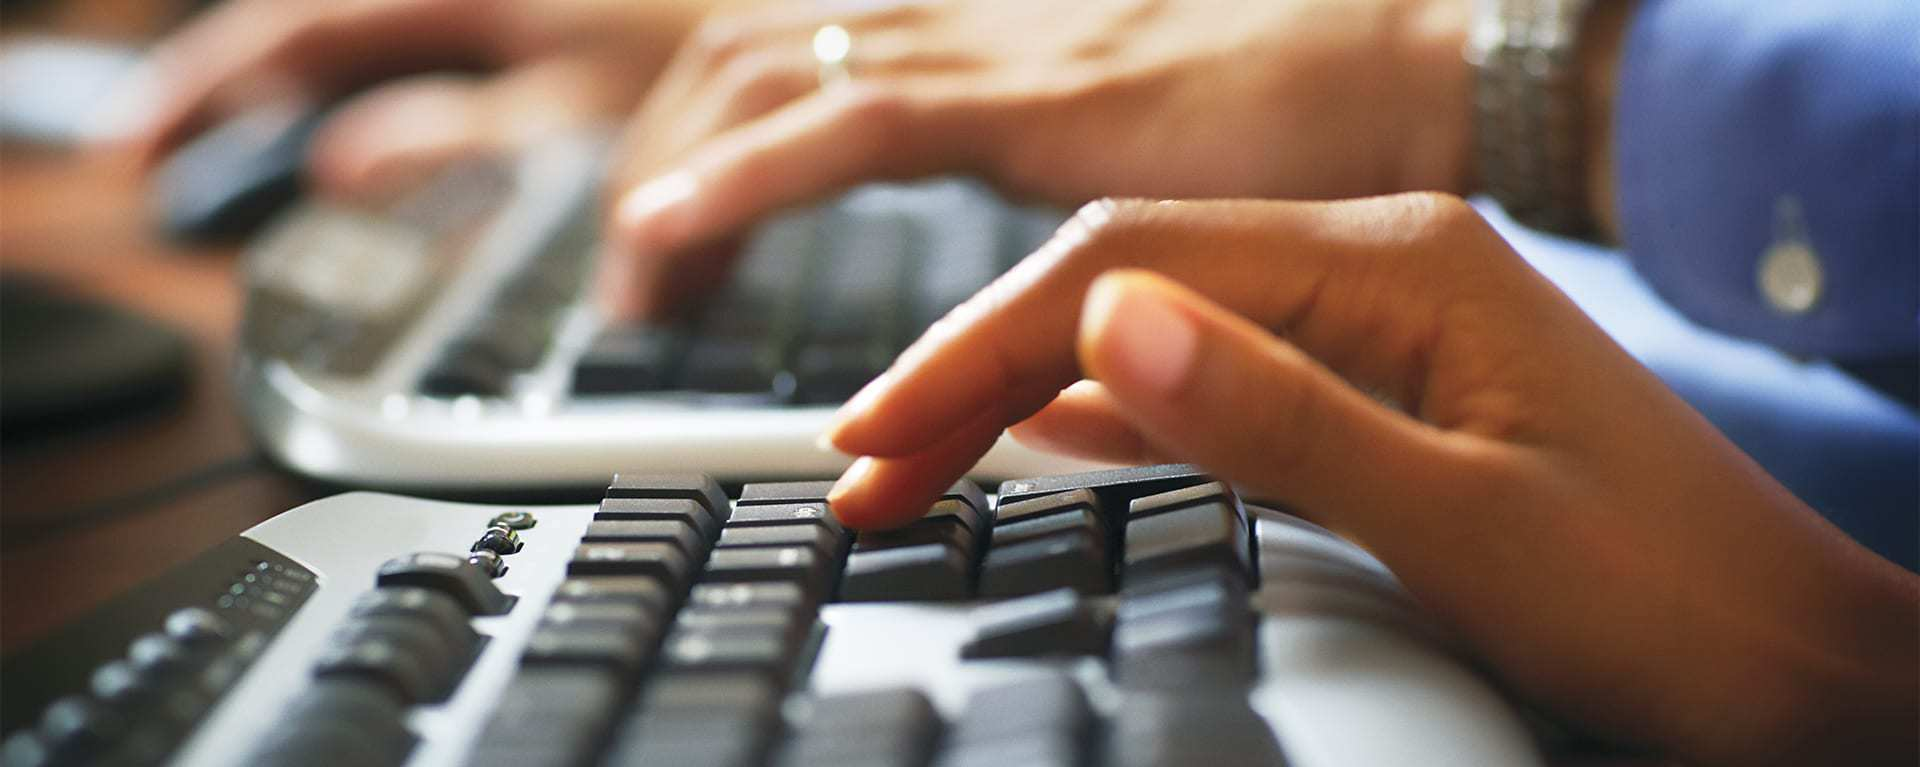 Image of Contact Center agents typing on a keyboard – Swartz Consulting LLC